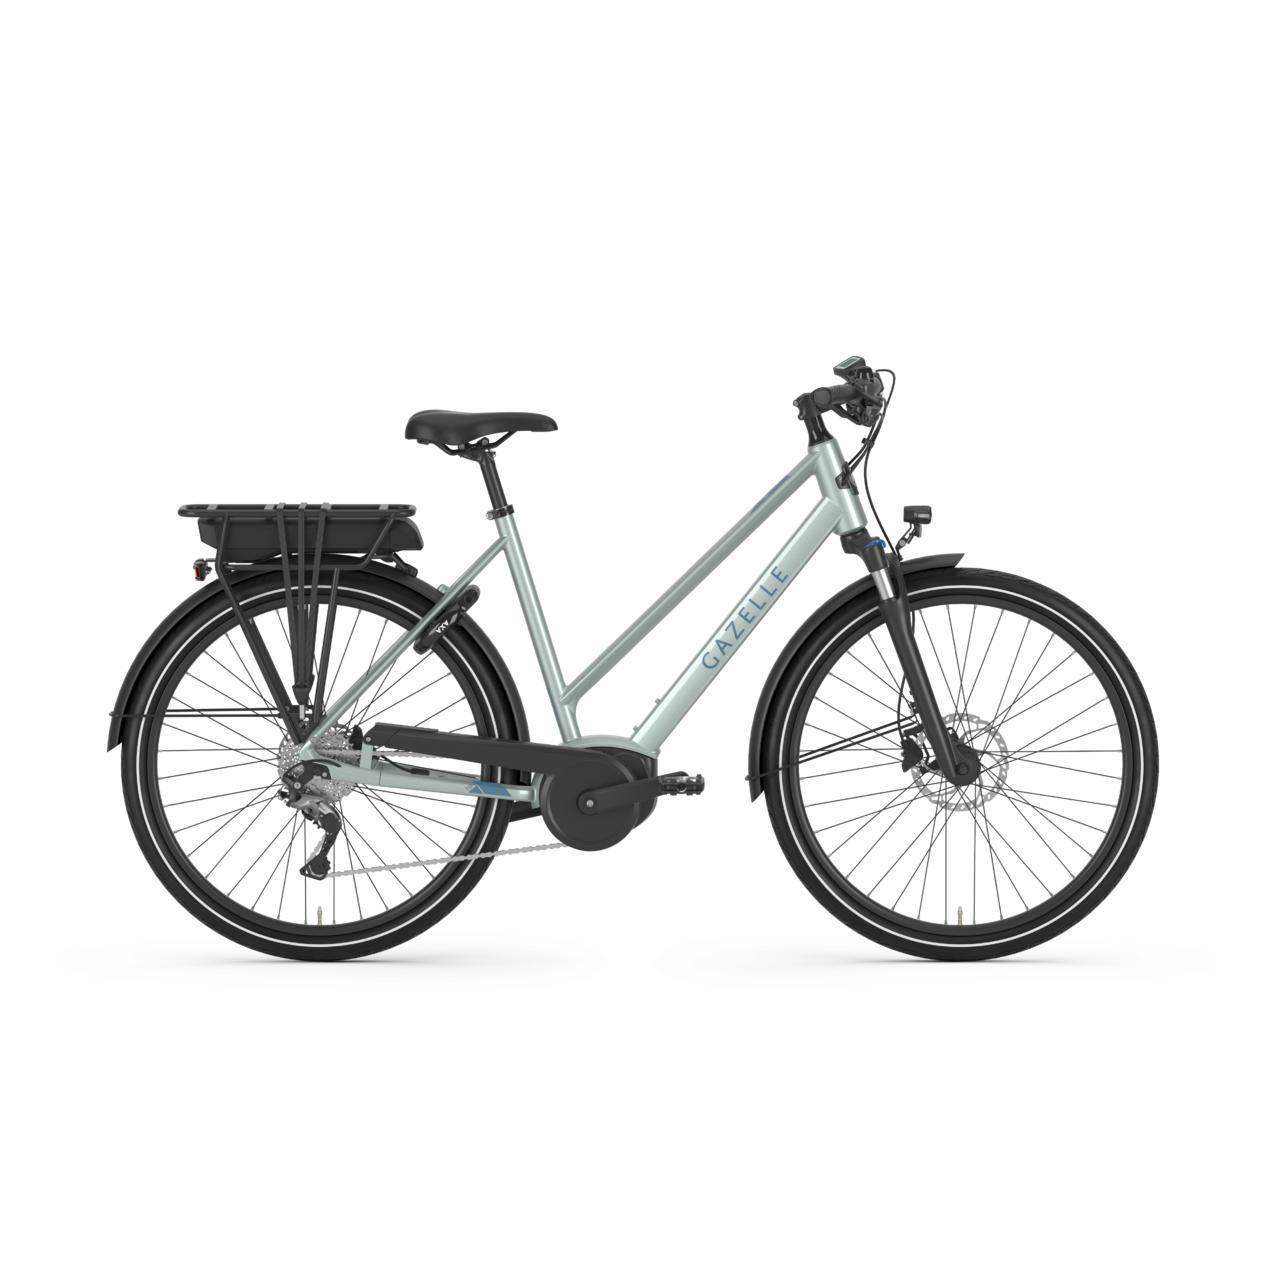 Gazelle Medeo T9 HMB-Oregon E-Bikes